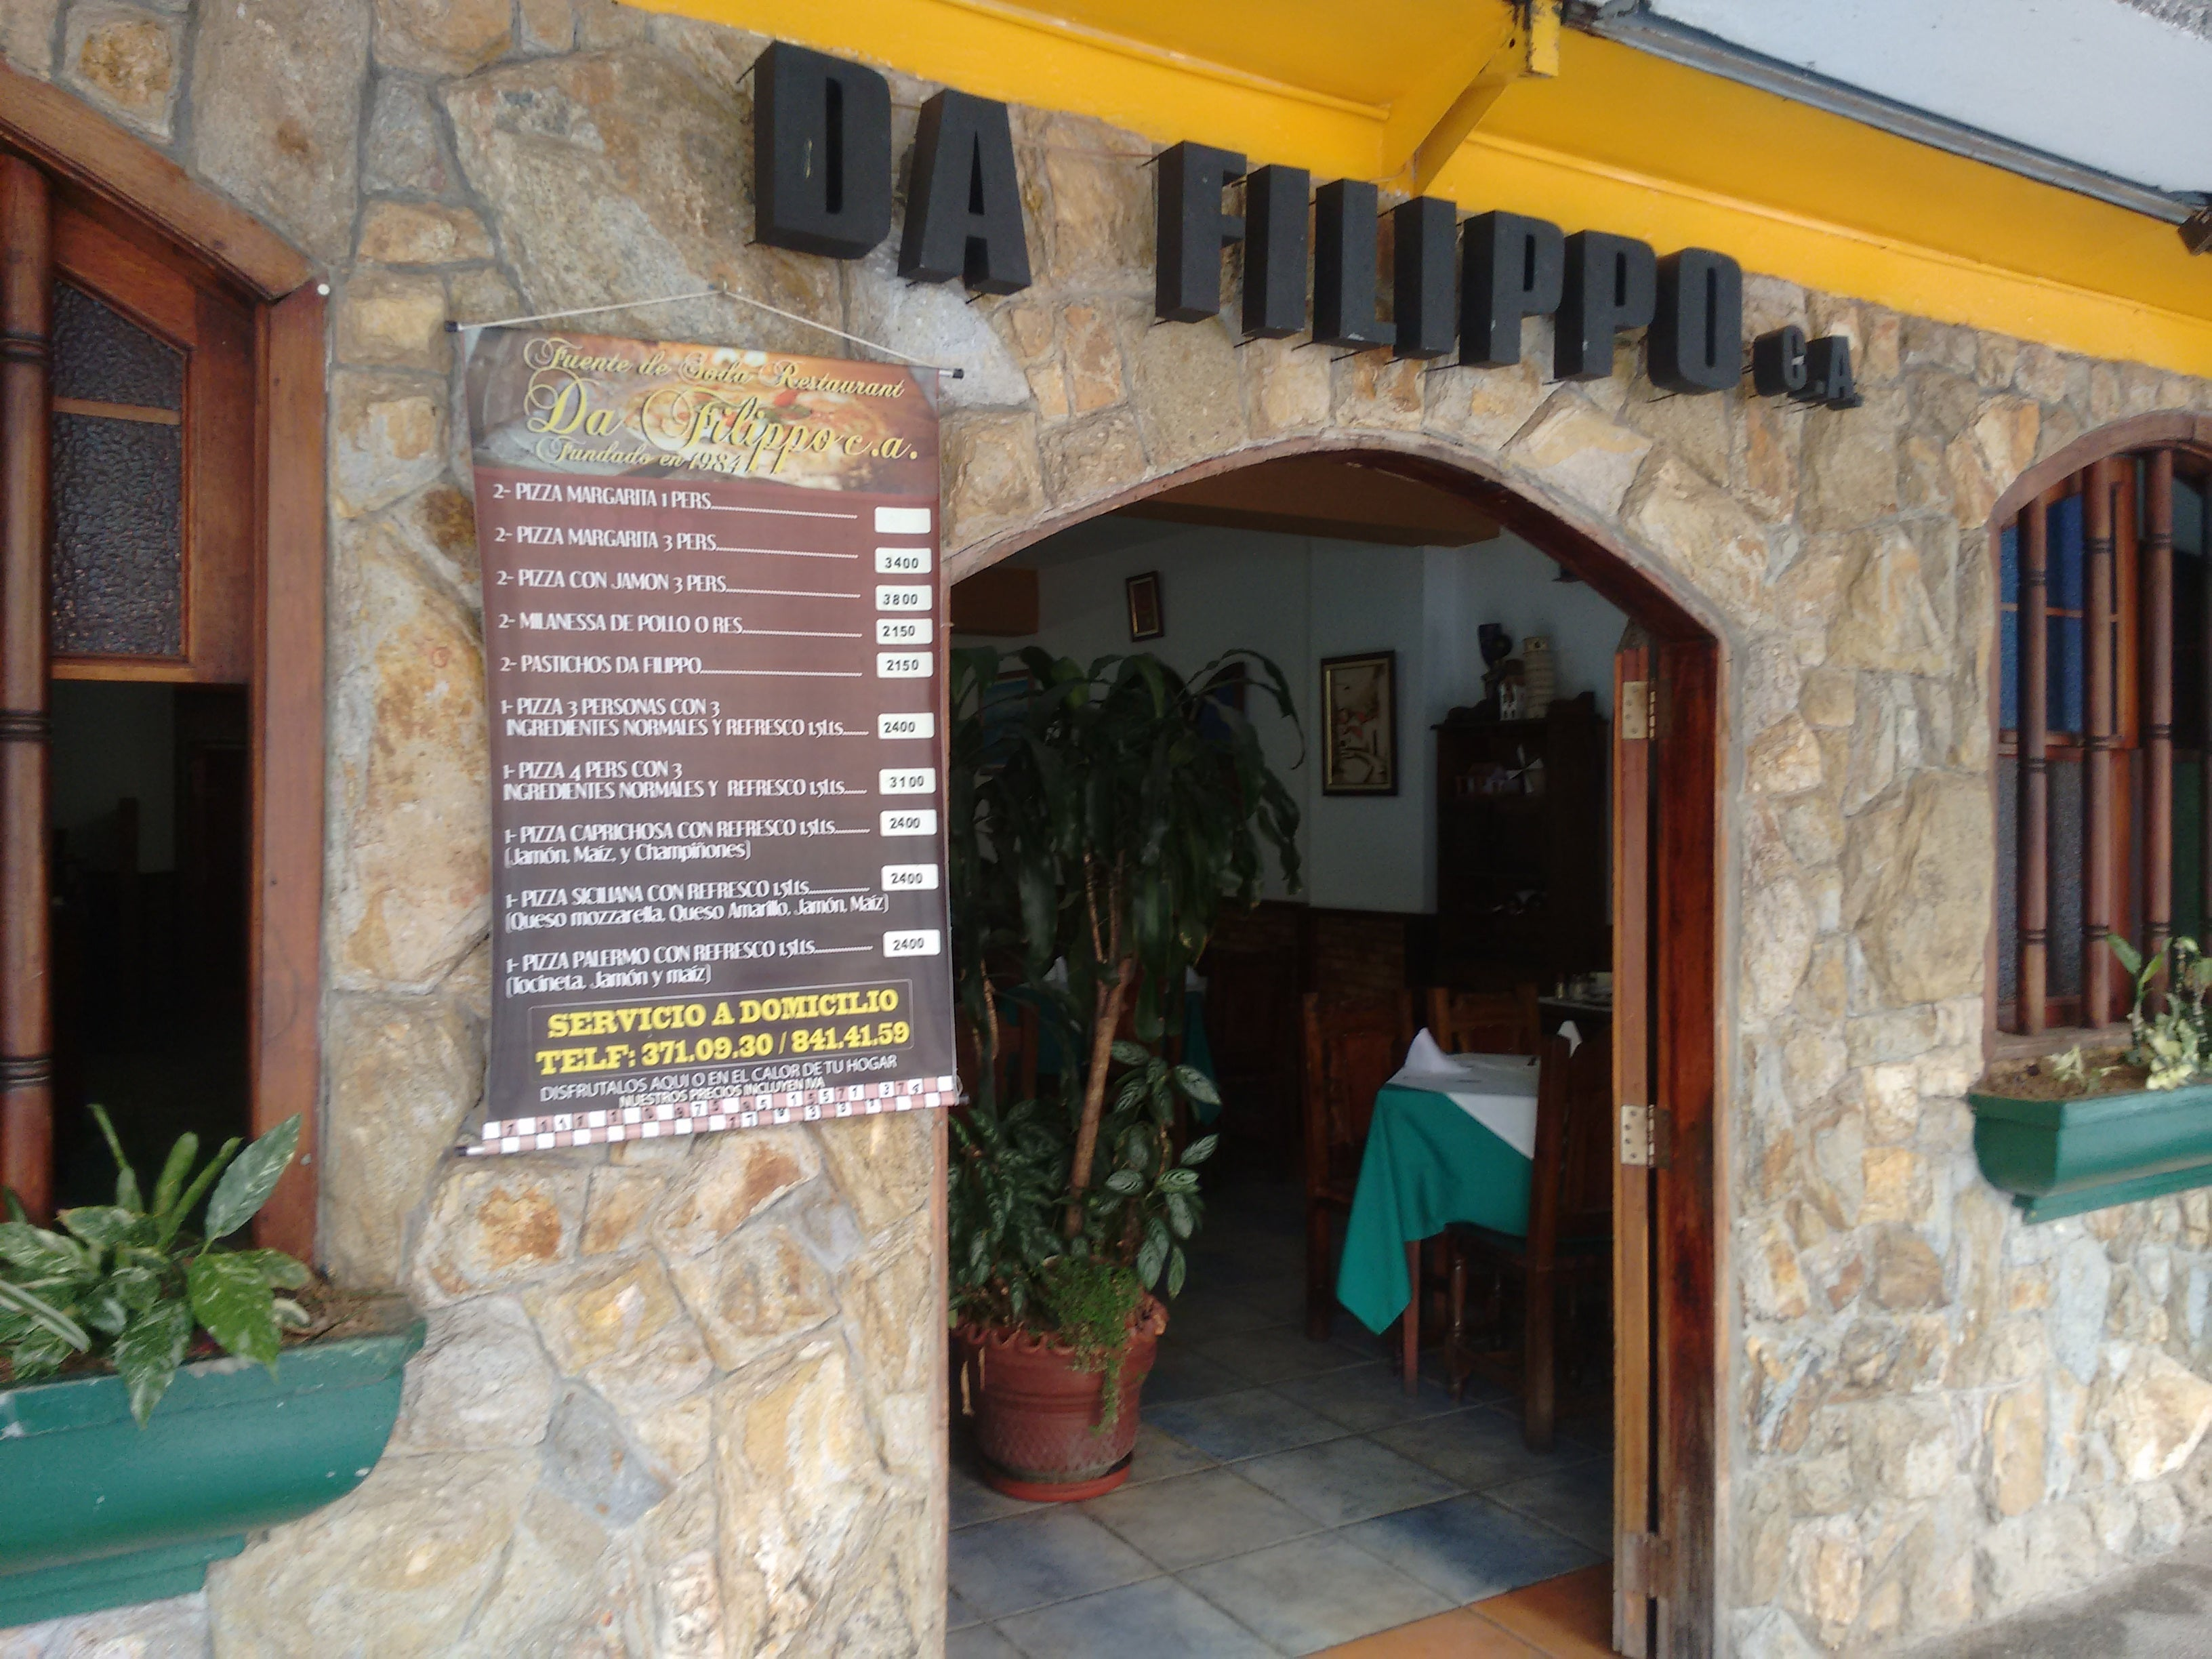 Facade in Restaurant Pizzería Da Filippo